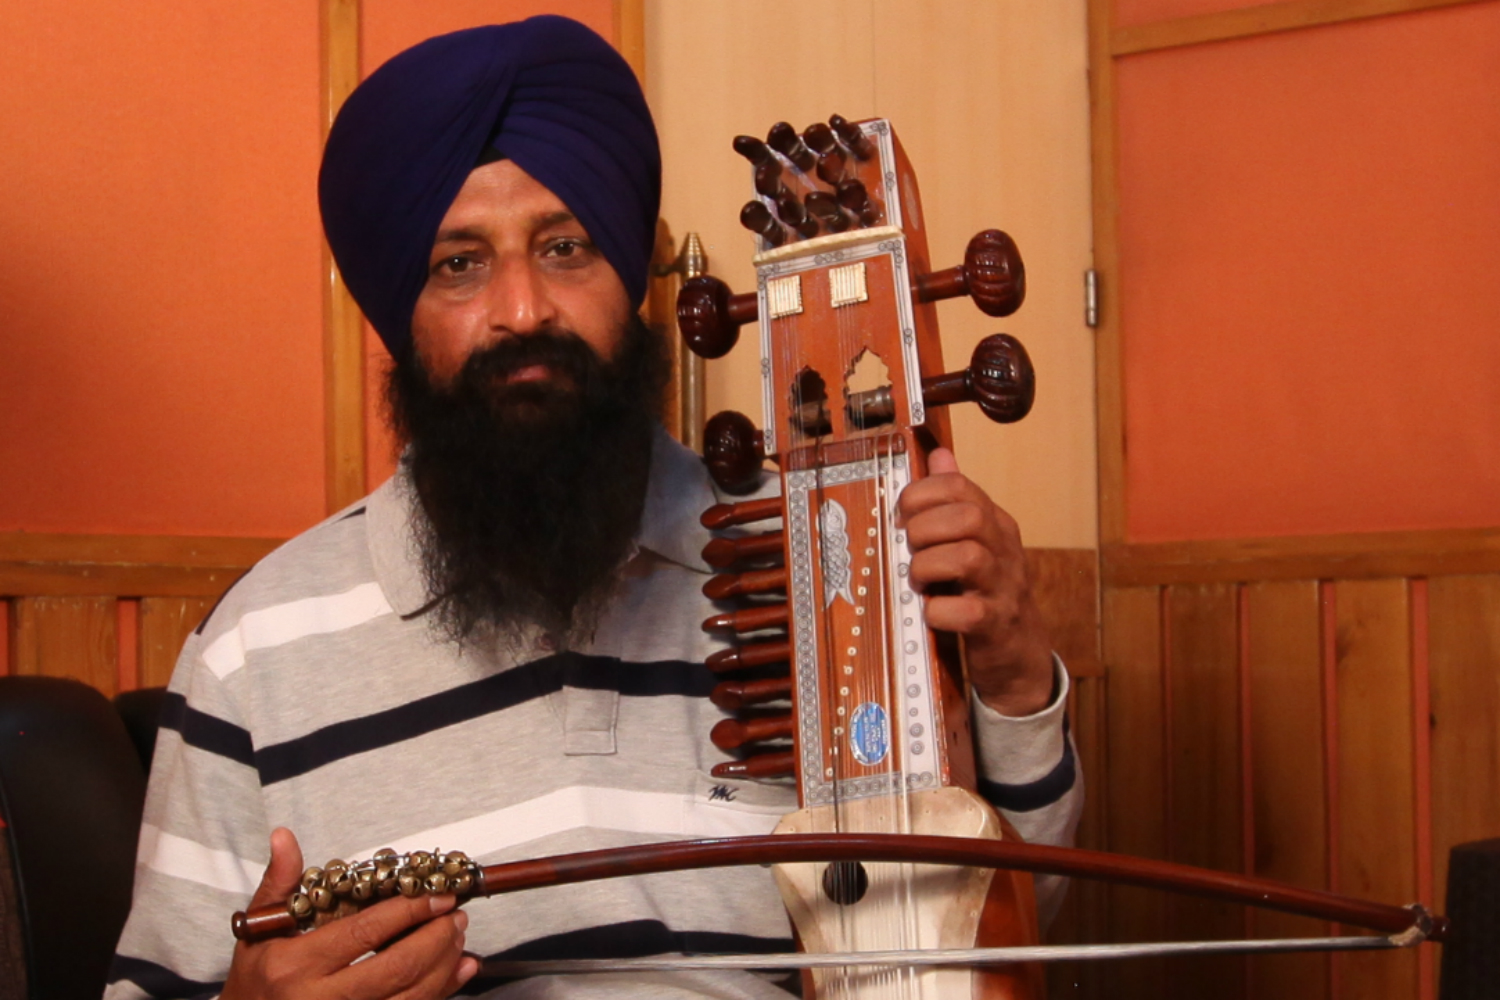 Dheera Singh image - Sarangi and Dhad player